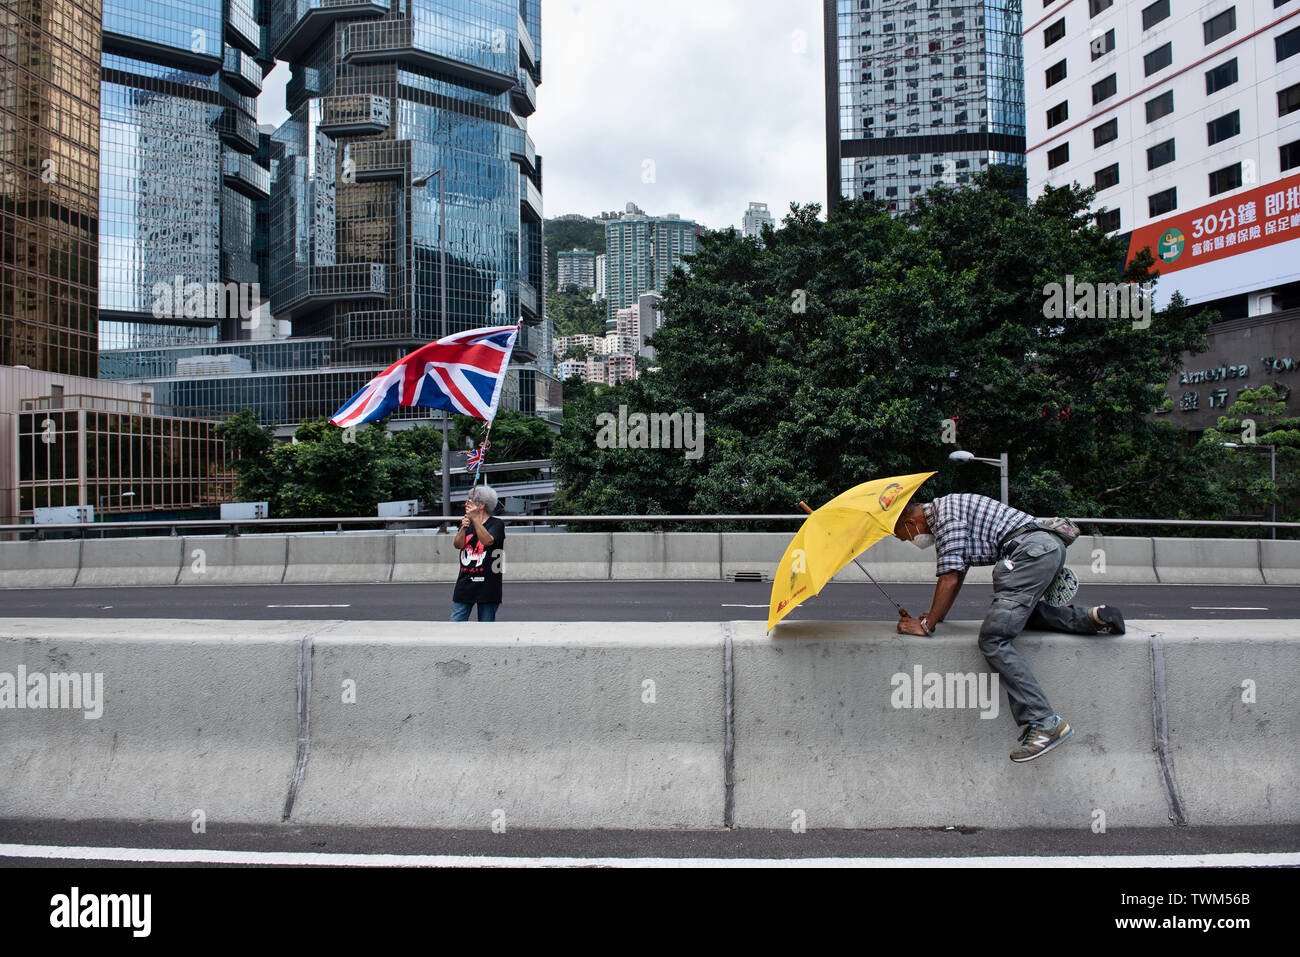 A protester waves the United Kingdom of Great Britain and Northern Ireland flag while another holds a yellow umbrella, symbol of the umbrella movement, while the roads have been blocked.  Despite the Chief Executive Carrie Lam's attempt to ease the heightened tension by agreeing to suspend the controversial extradition bill, student groups and union has continue the protest against Hong Kong government. The protesters called for the withdrawal of the controversial extradition bill, the release and non-prosecution of the people arrested due to the cause, investigation of whether excessive force - Stock Image